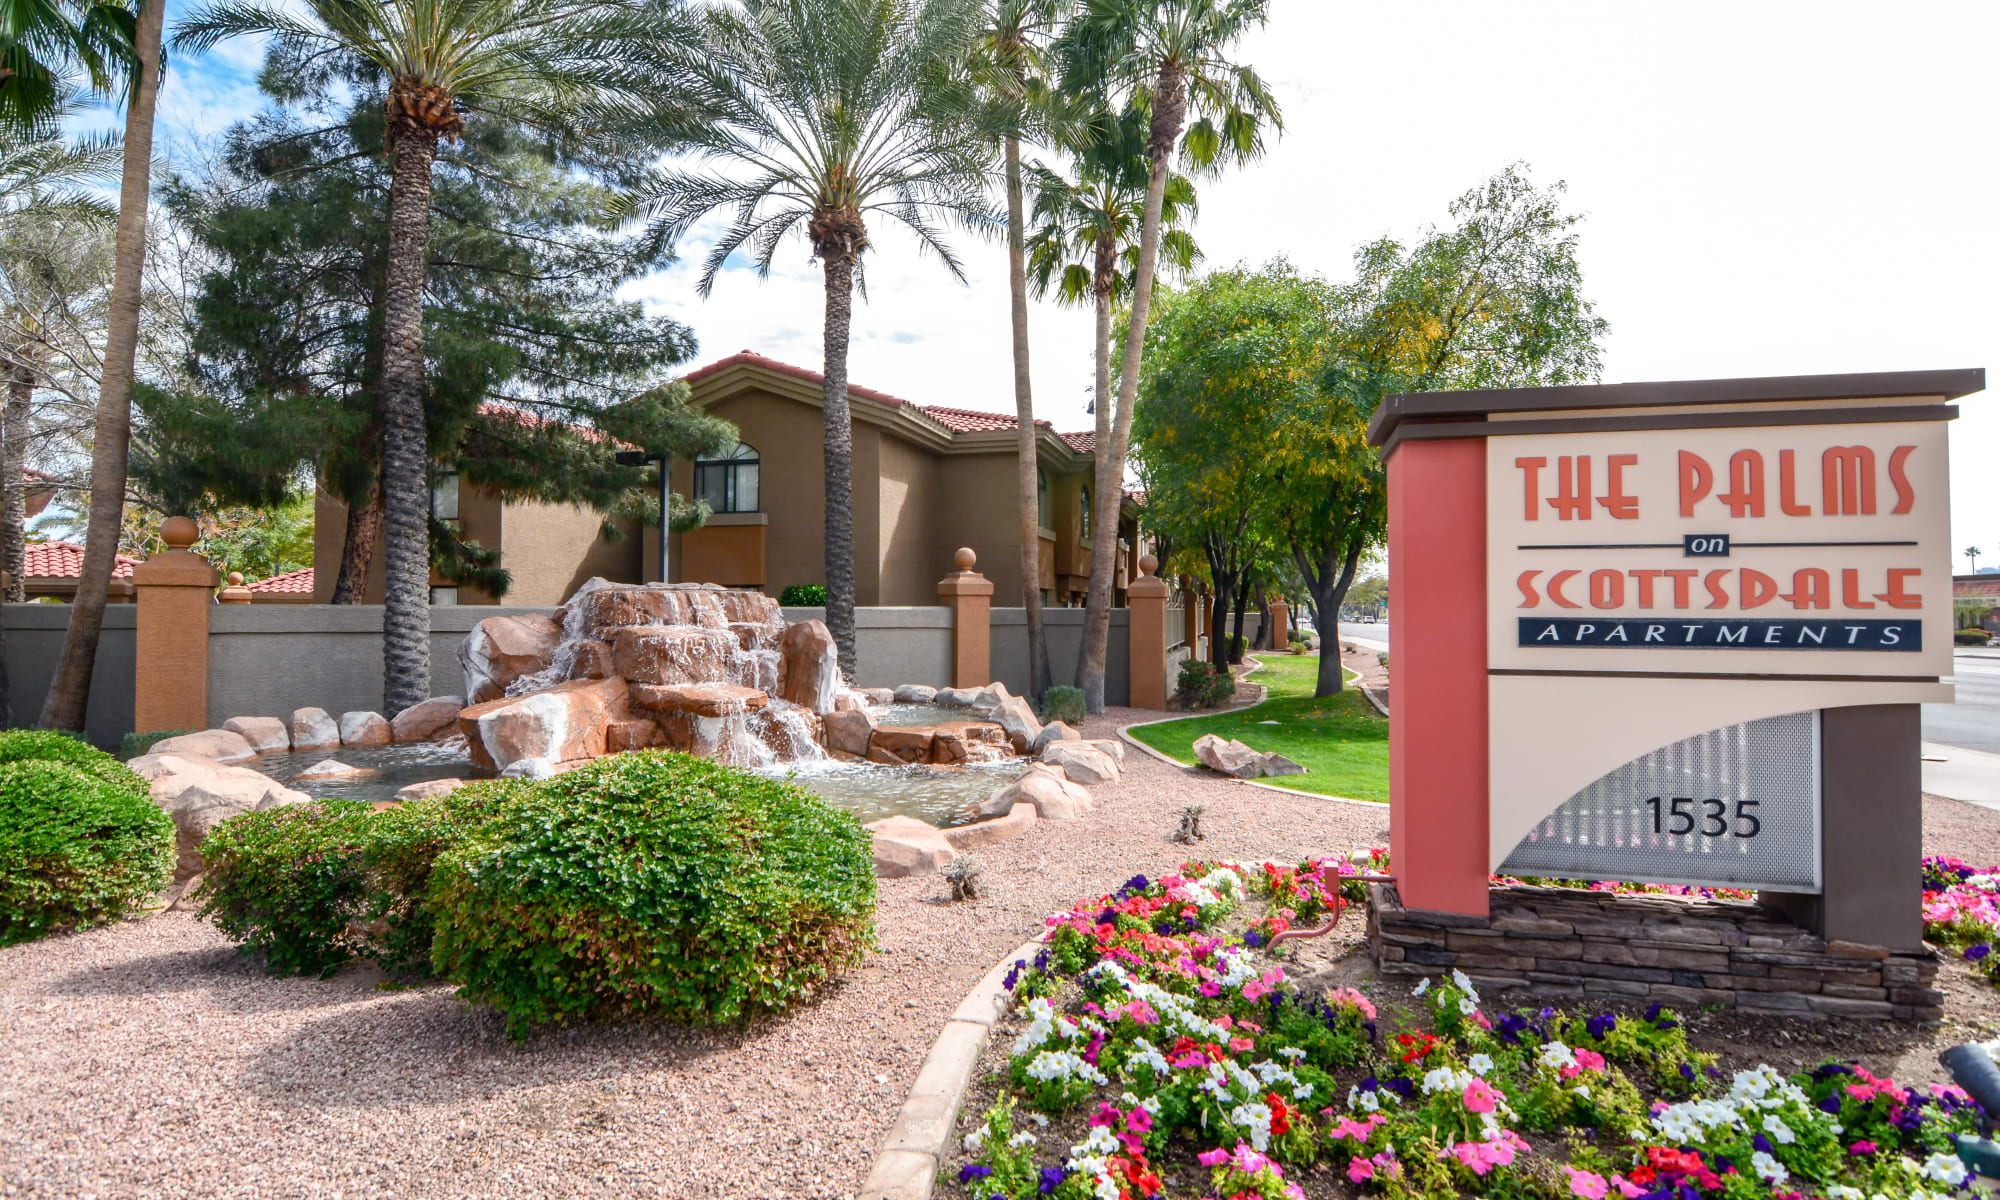 Apartments at The Palms on Scottsdale in Tempe, Arizona